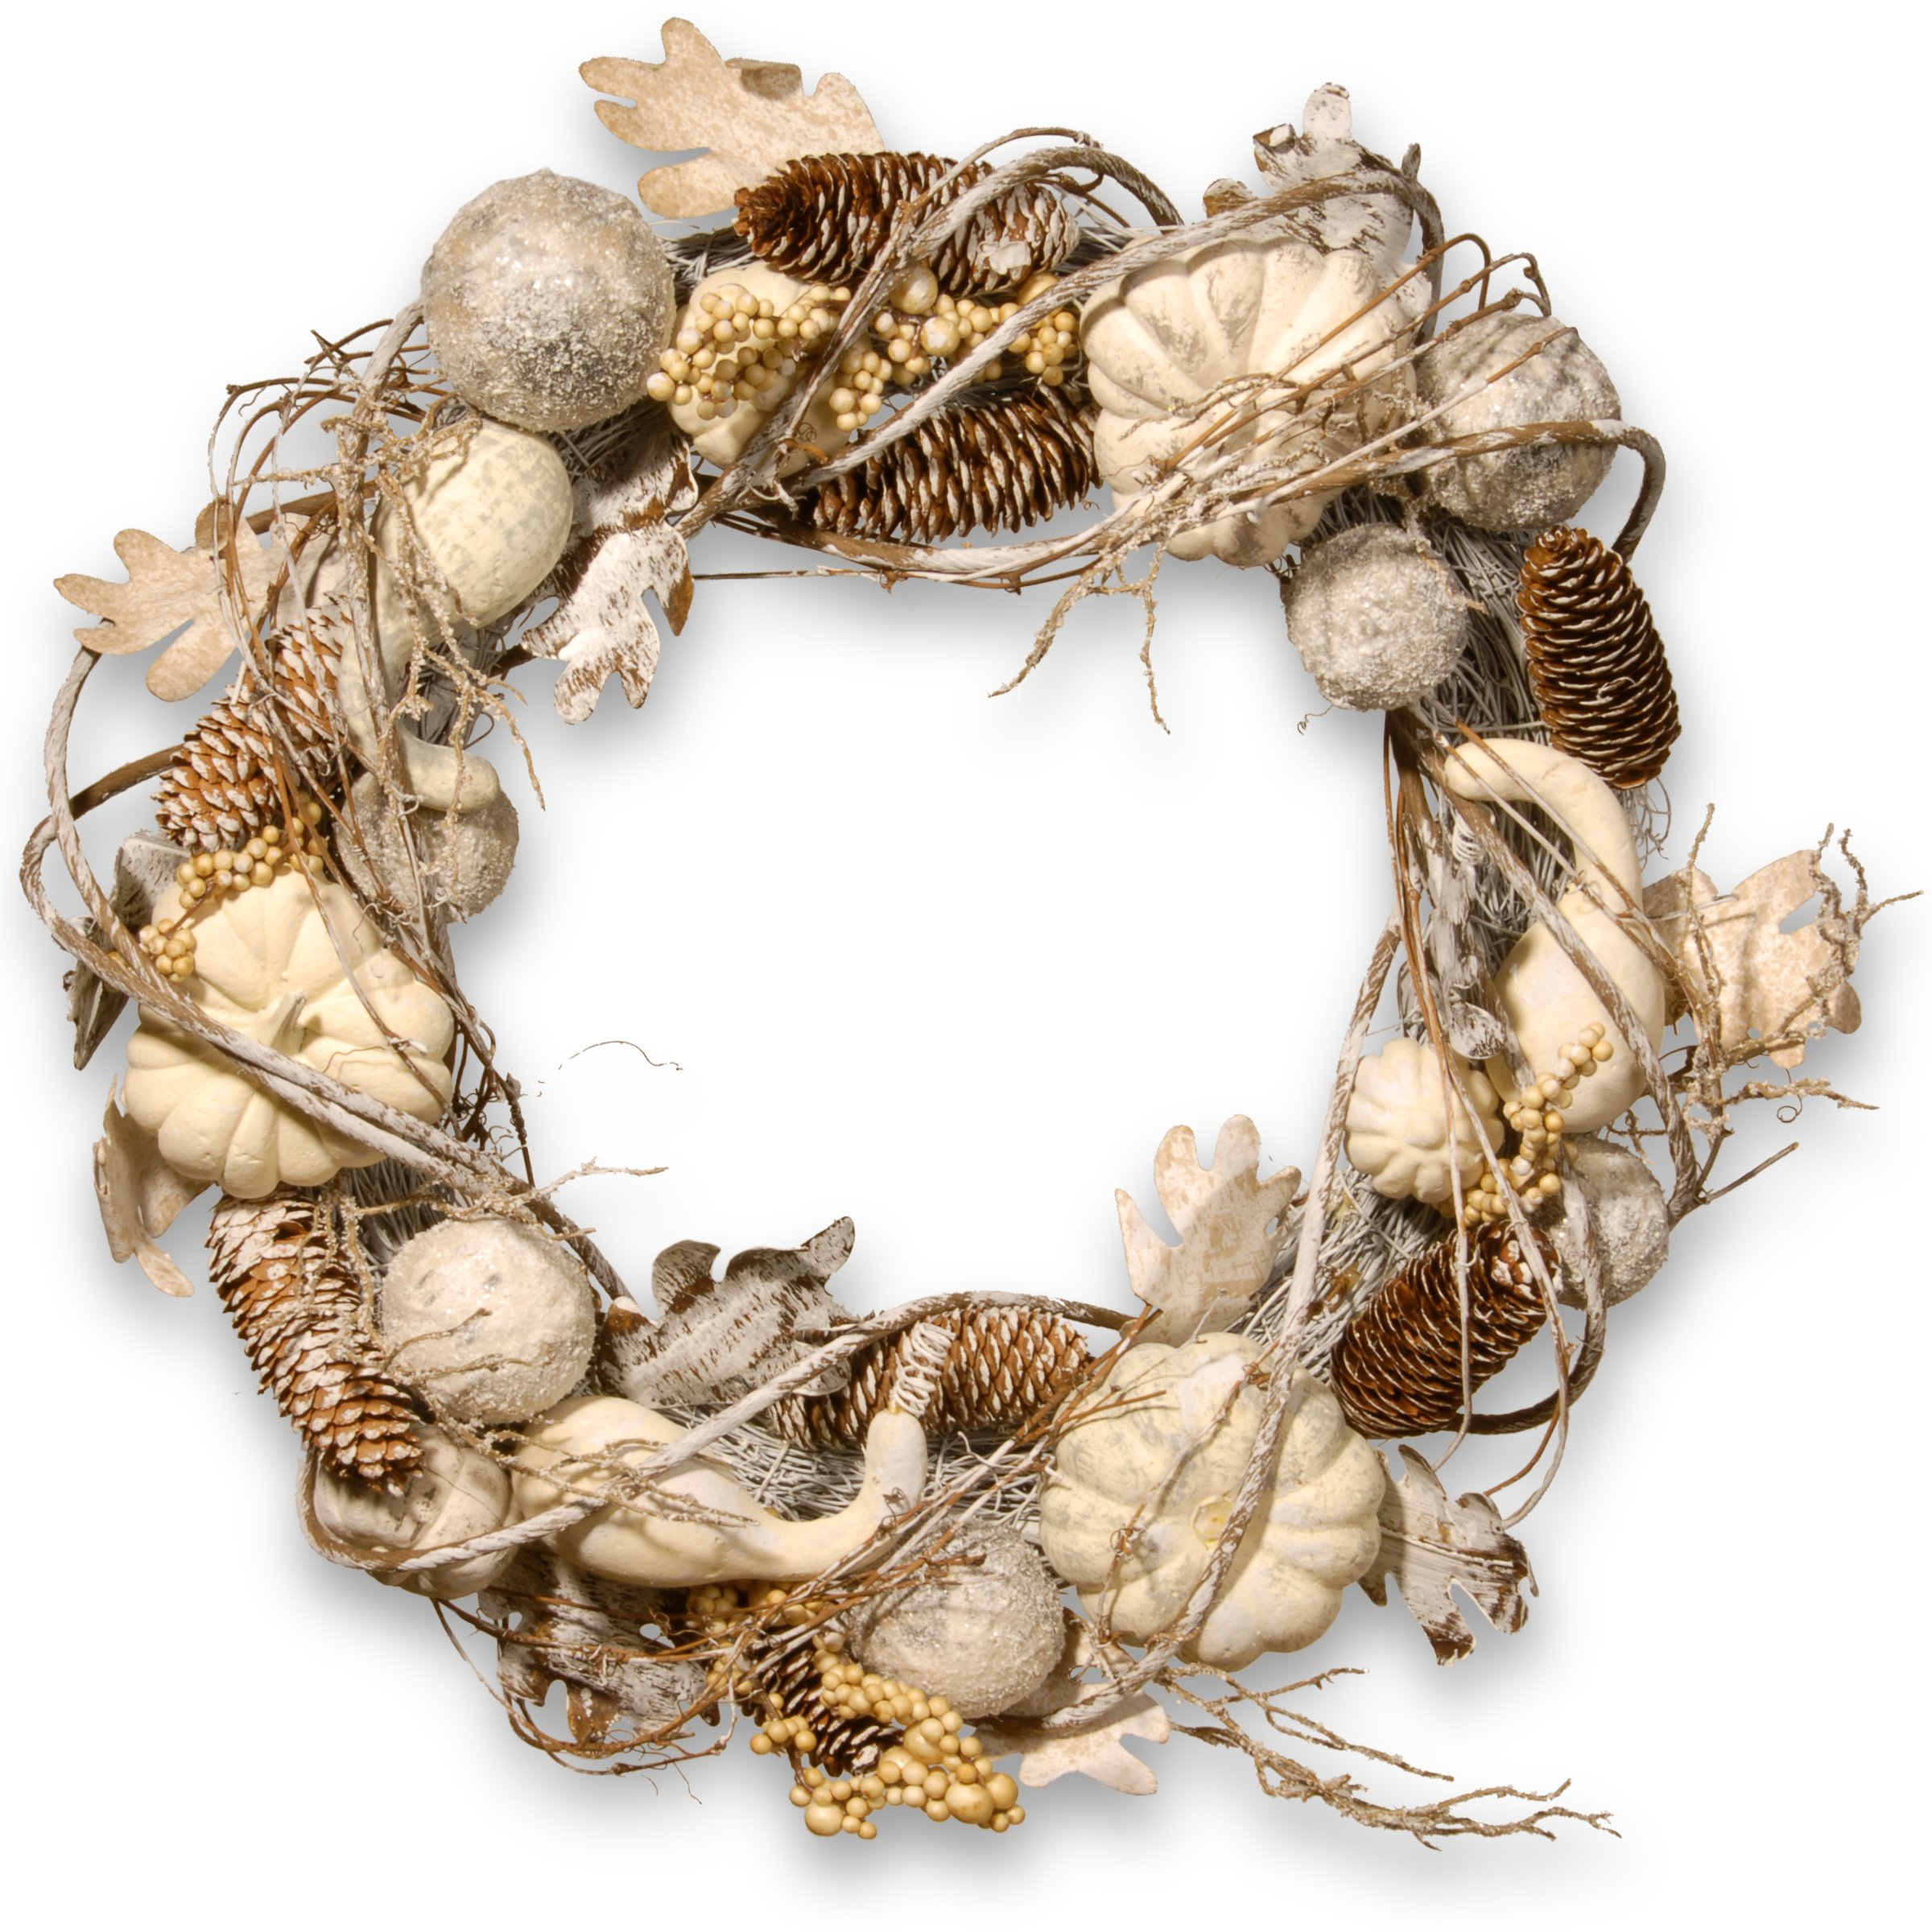 National Tree 20 Inch White Tipped Pinecone Wreath with Gourds, Berries and Ball Ornaments (RAHV-W060669A) by National Tree Company